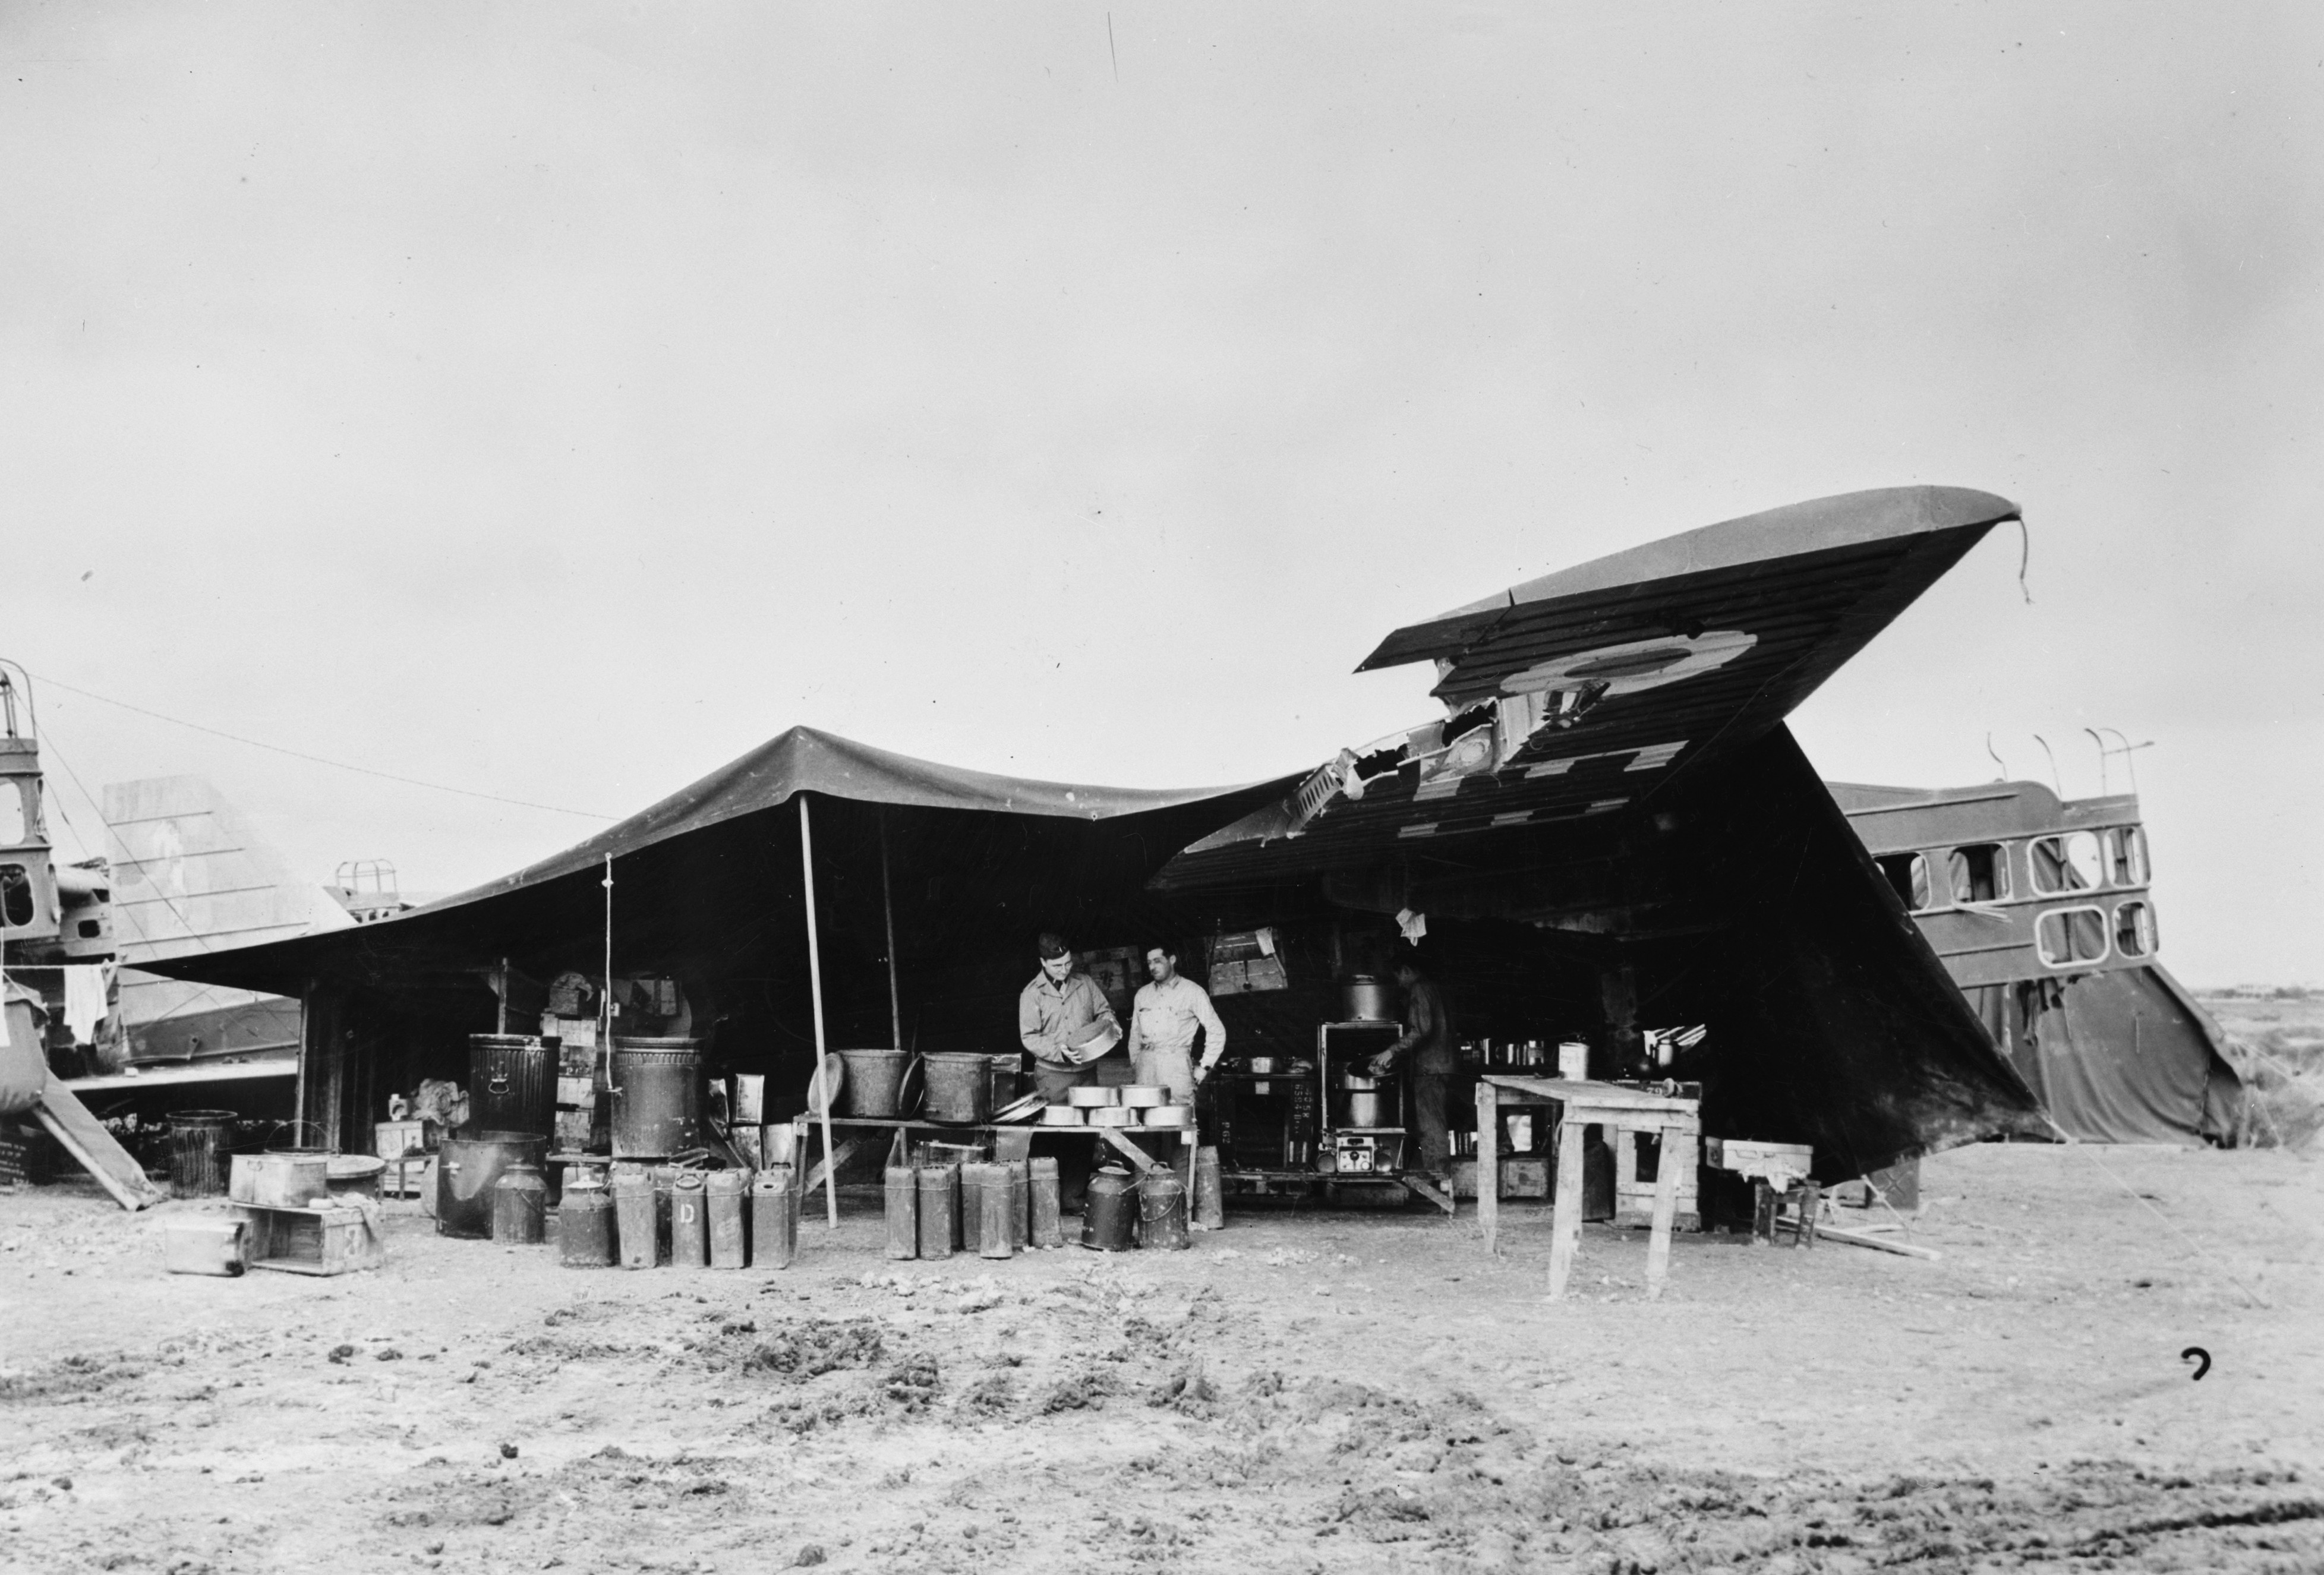 File:Bloch MB200 used as US field kitchen 1943.jpg - Wikimedia Commons